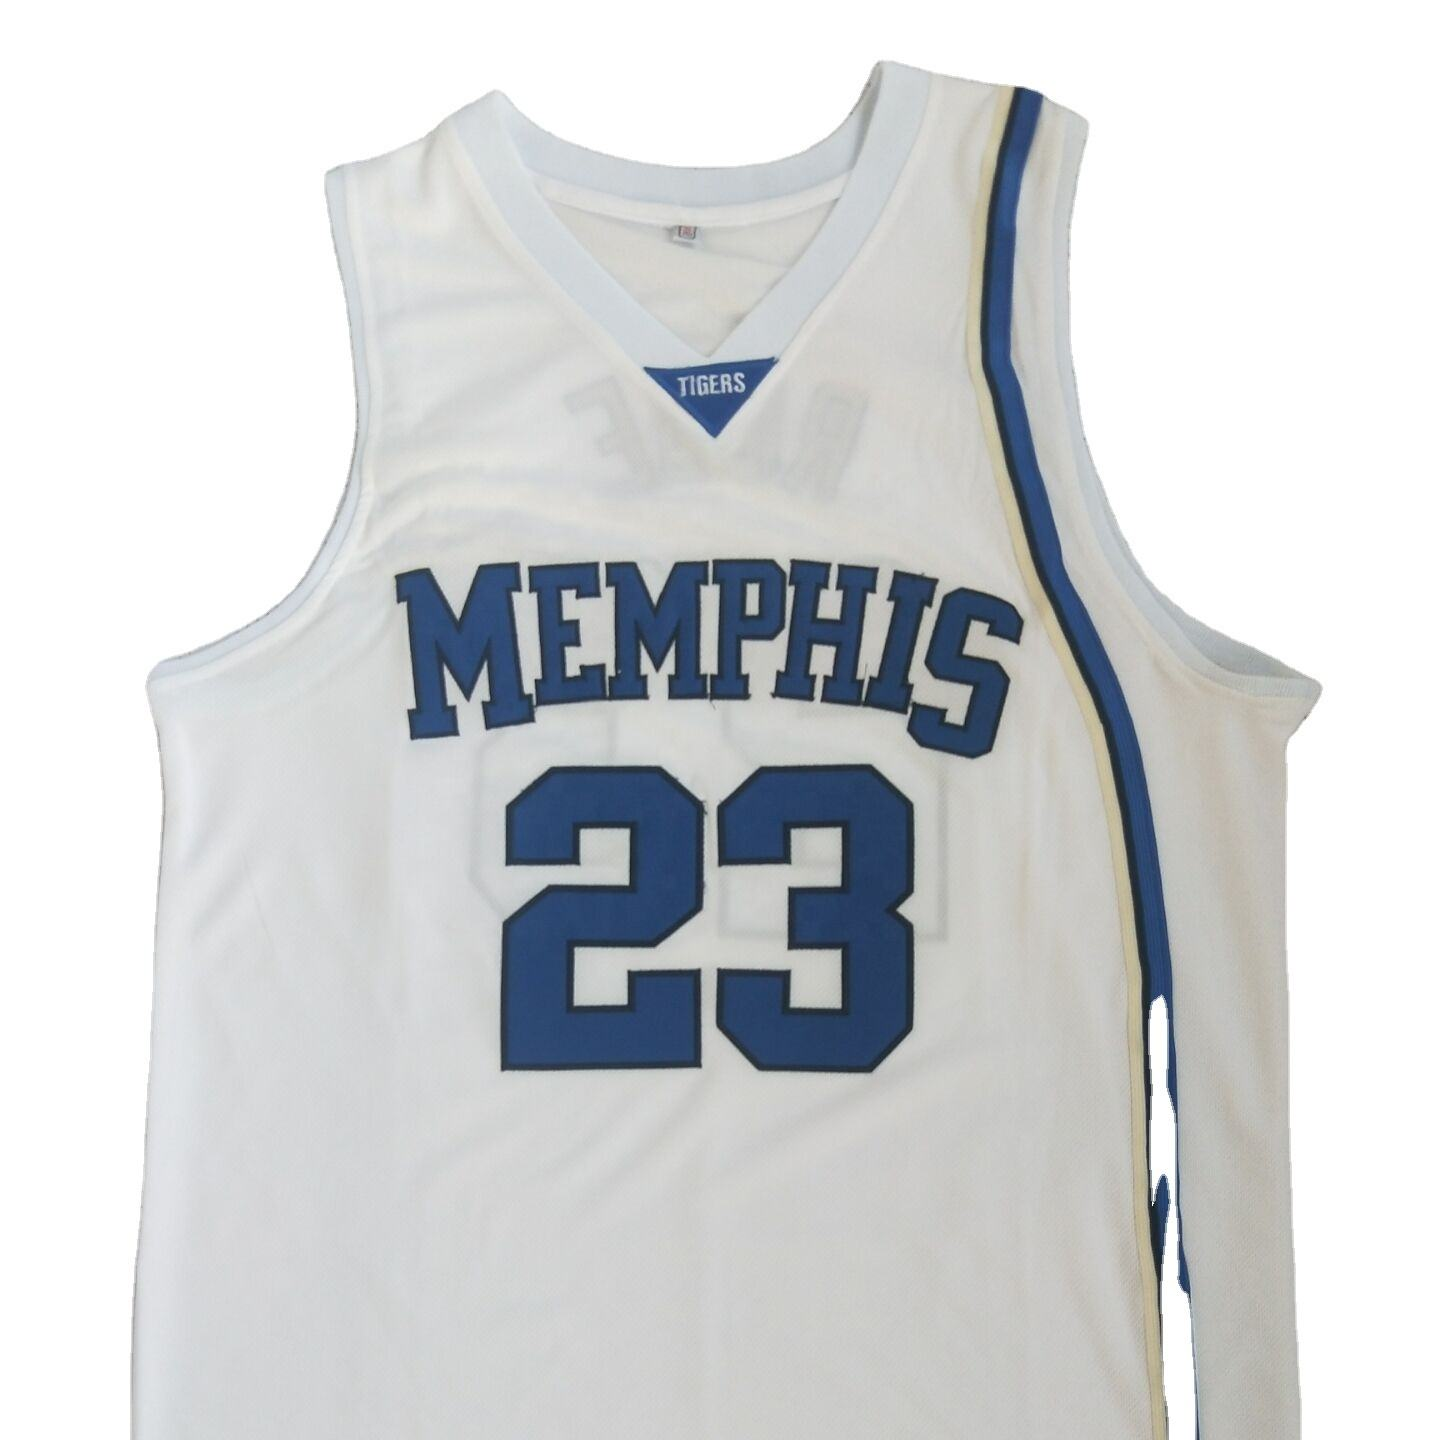 ÉTATS-UNIS Memphis #<span class=keywords><strong>10</strong></span> N C A UNE ROSE blanc jersey uniforme de basket-ball basket-ball de maillot authentique lecteur personnalisé version maillot de basket-ball